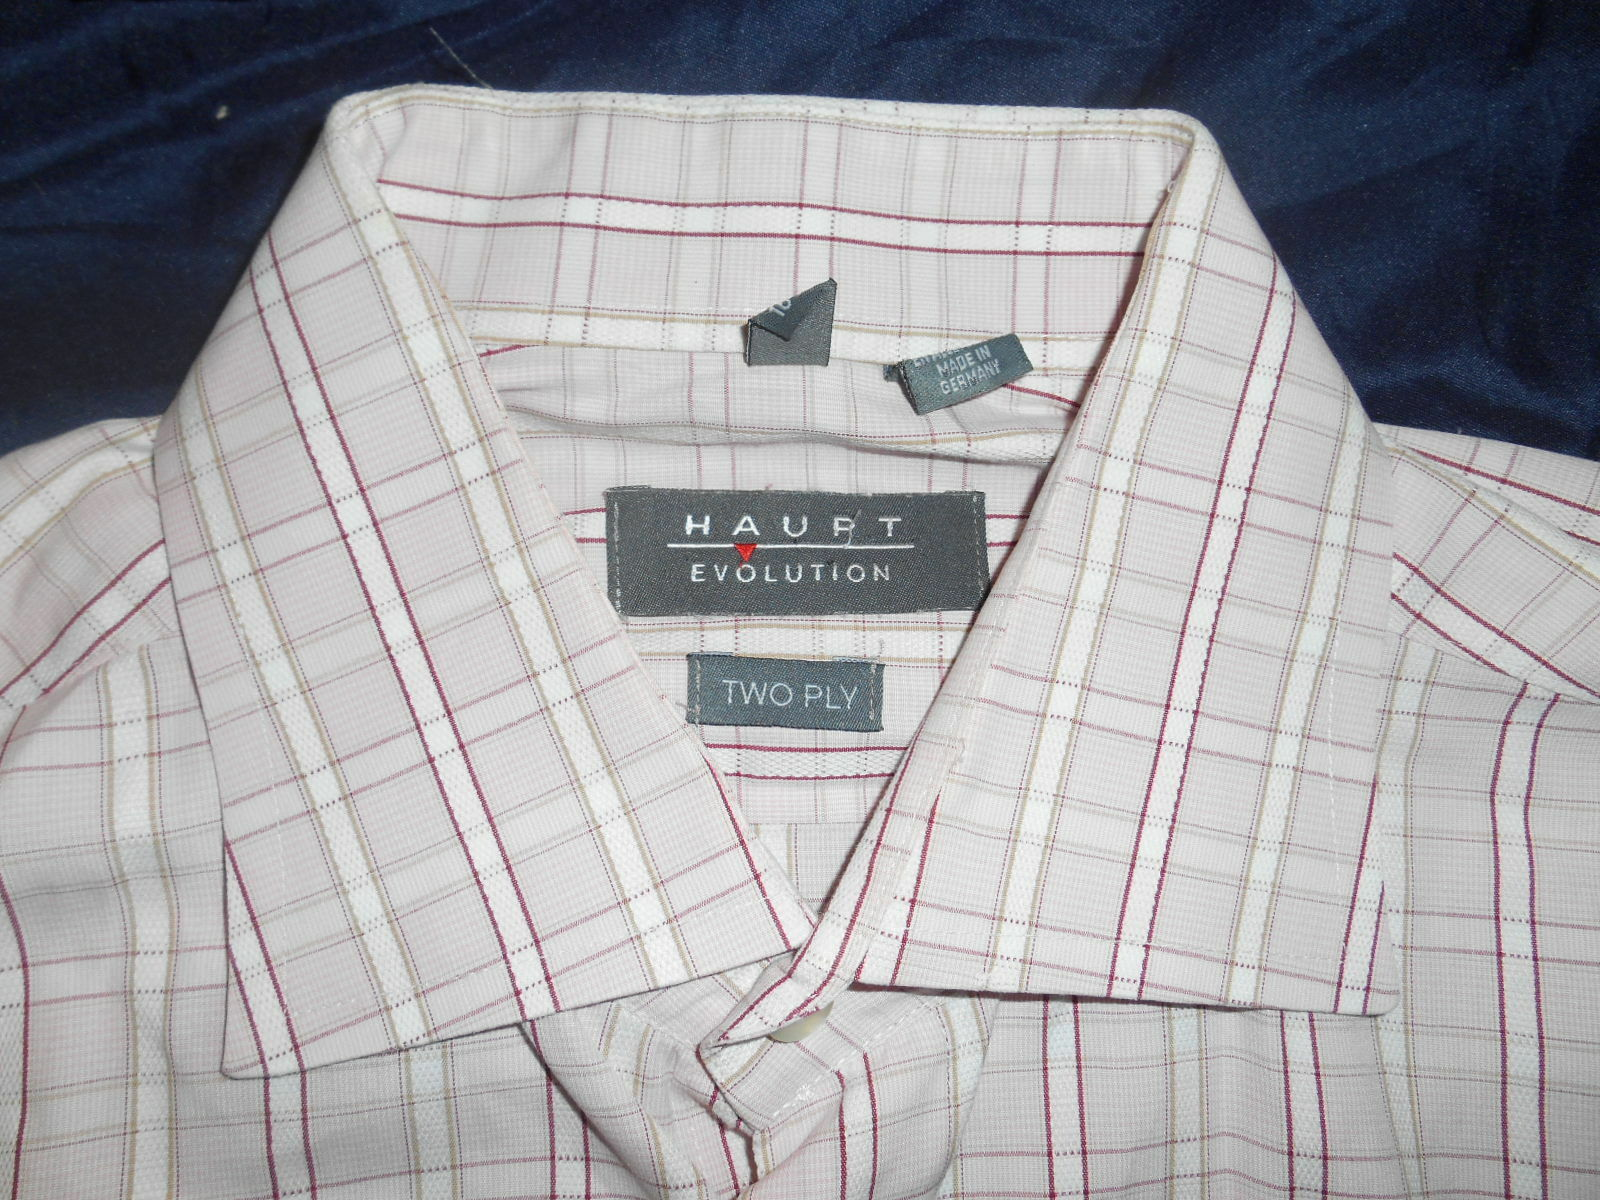 HAUPT EVOLUTION LONG SLEEVE DRESS SHIRT FRENCH CUFFS SIZE 16.5 34  GERMANY SUPER